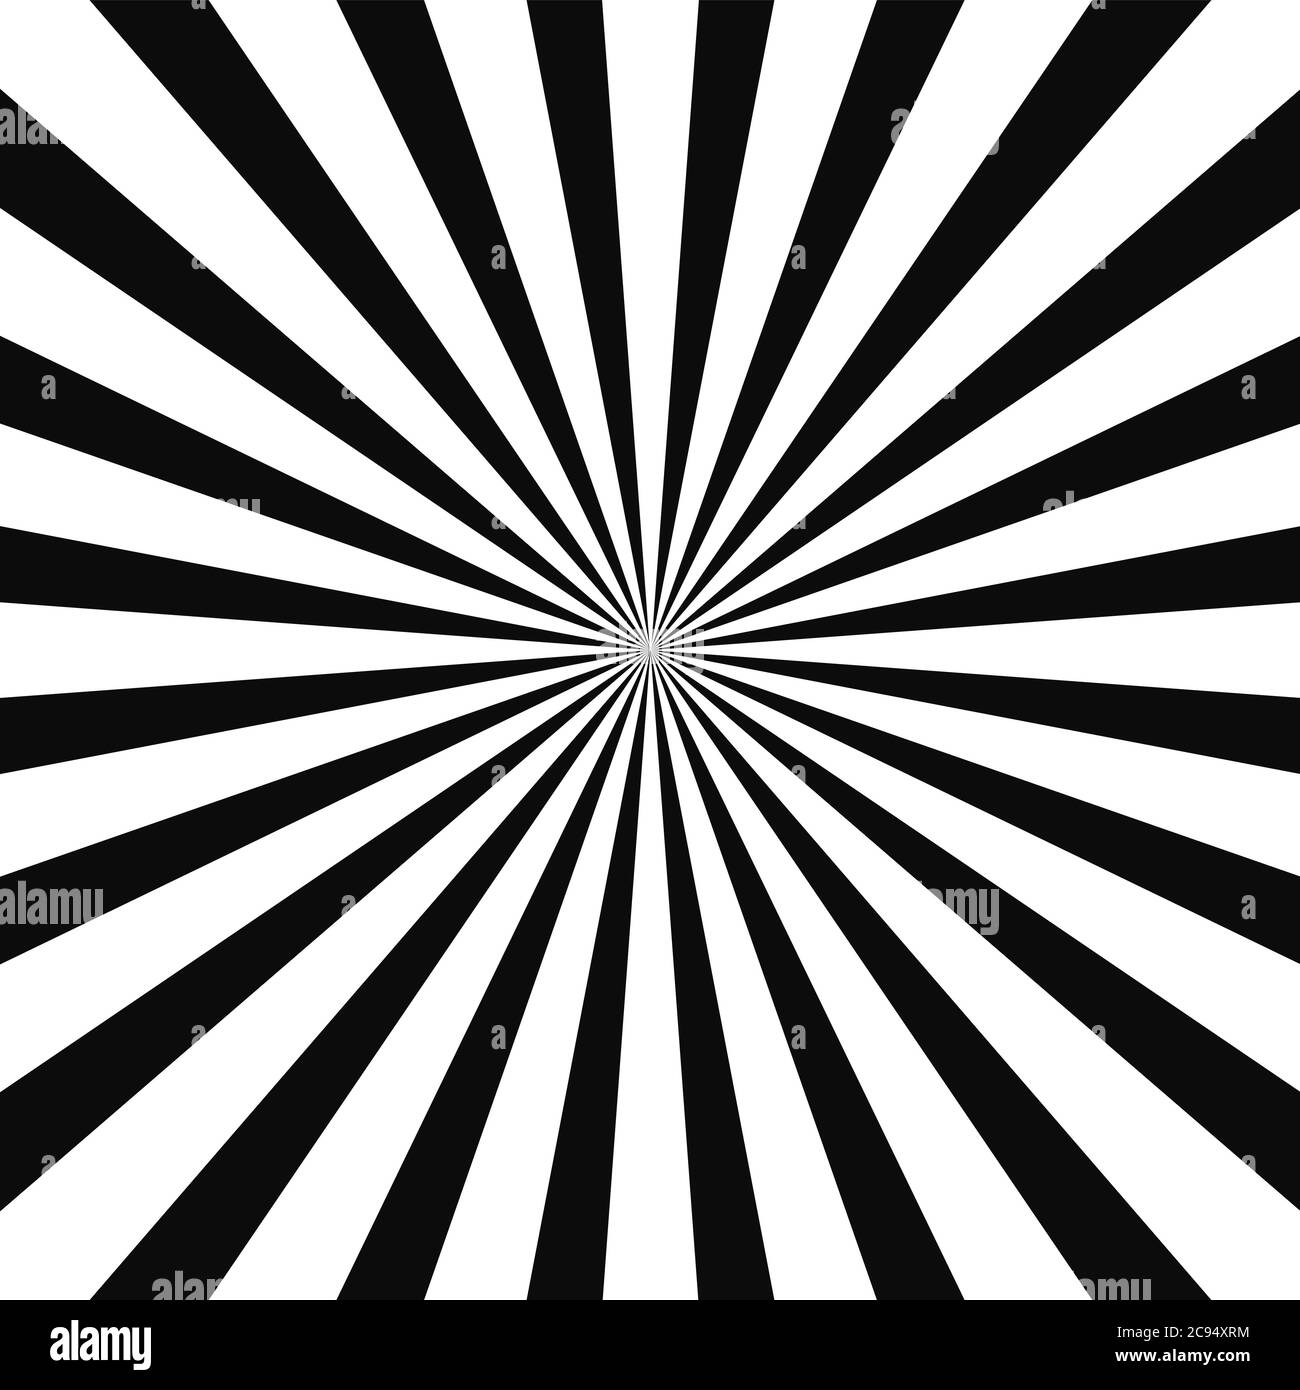 Abstract optical illusion background vector design. Psychedelic striped black and white backdrop. Hypnotic pattern.White and black beam style background. Vector Stock Vector